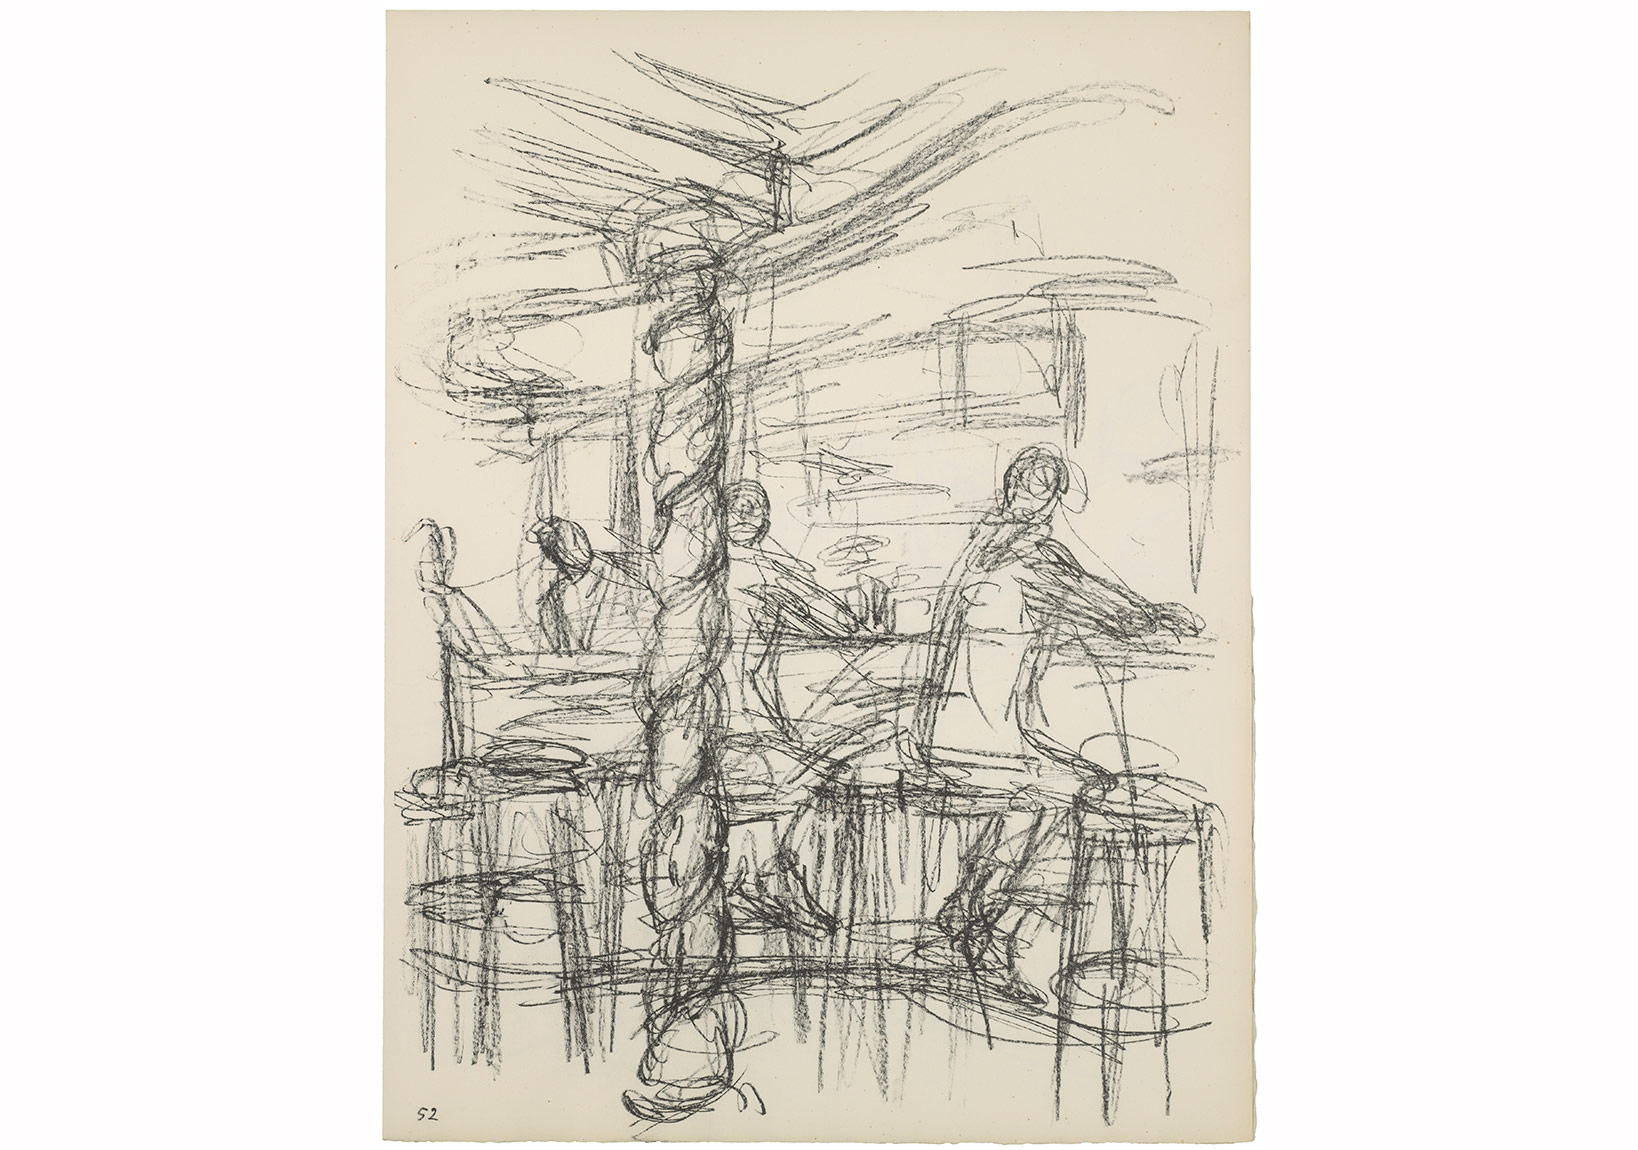 Alberto Giacometti, Chez Adrien'in barı (III) The bar at Chez Adrien (III) 1969'da Sonsuz Paris'te yayımlanan taşbaskı, 52. Plaka Lithograph published in 1969 in Paris without End, plate 52, 42,5 x 32,5 cm Giacometti Vakfı Koleksiyonu, Paris, env. 1994-0865-52 Giacometti Foundation Collection, Paris, inv. 1994-0865-52 © Estate Giacometti (Fondation Giacometti + ADAGP) Paris, 2015